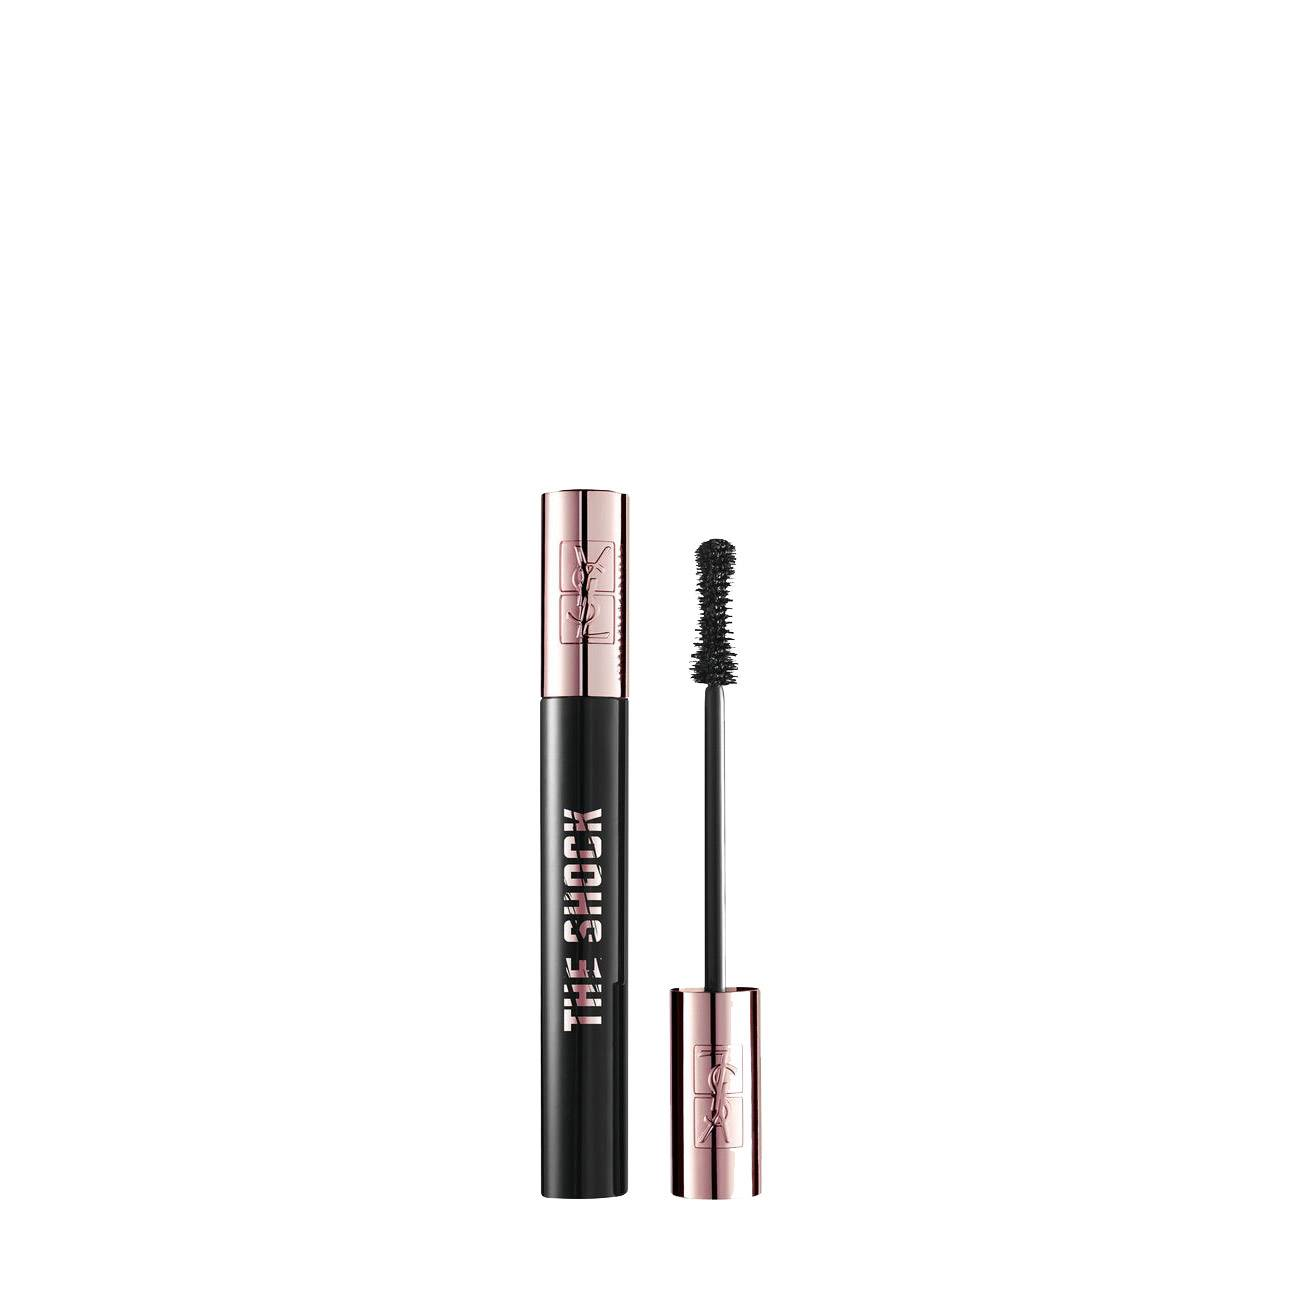 THE SHOCK WATERPROOF VOLUMIZING MASCARA 01 8 Ml imagine produs